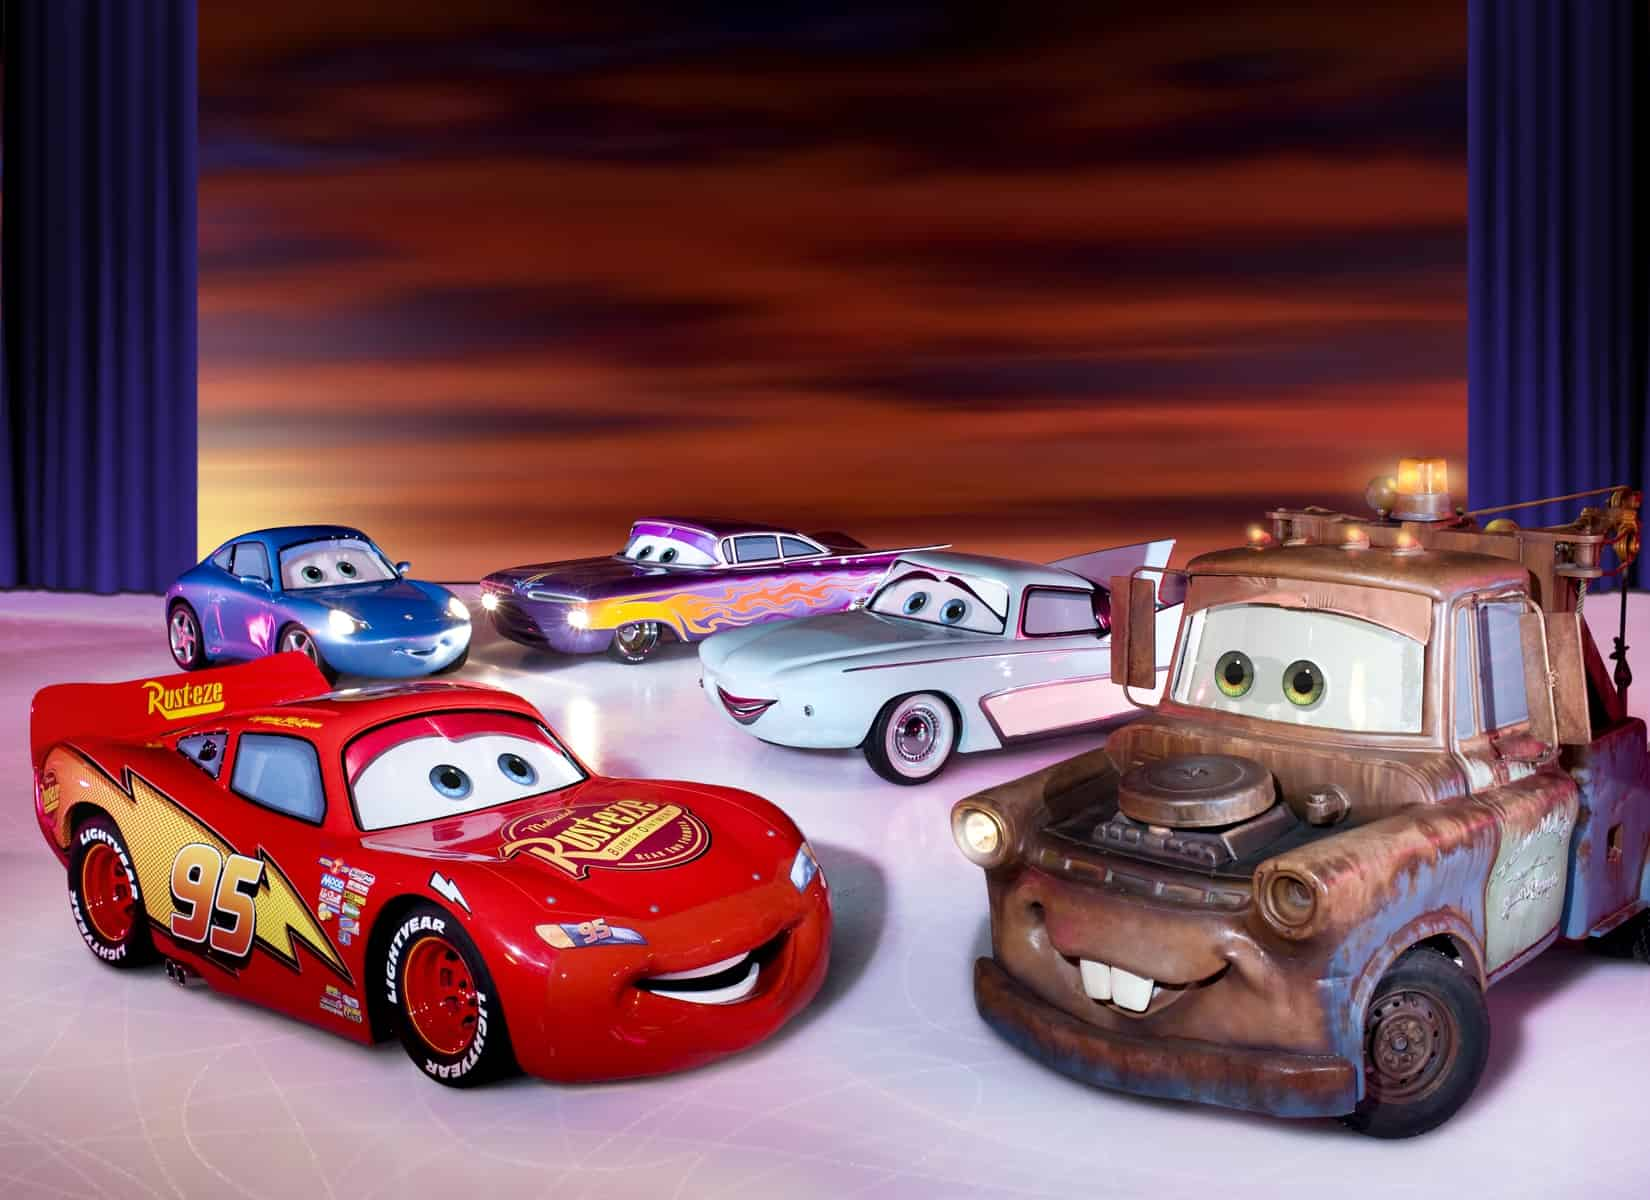 Cars on ice as part of Disney on Ice Worlds of Enchantment